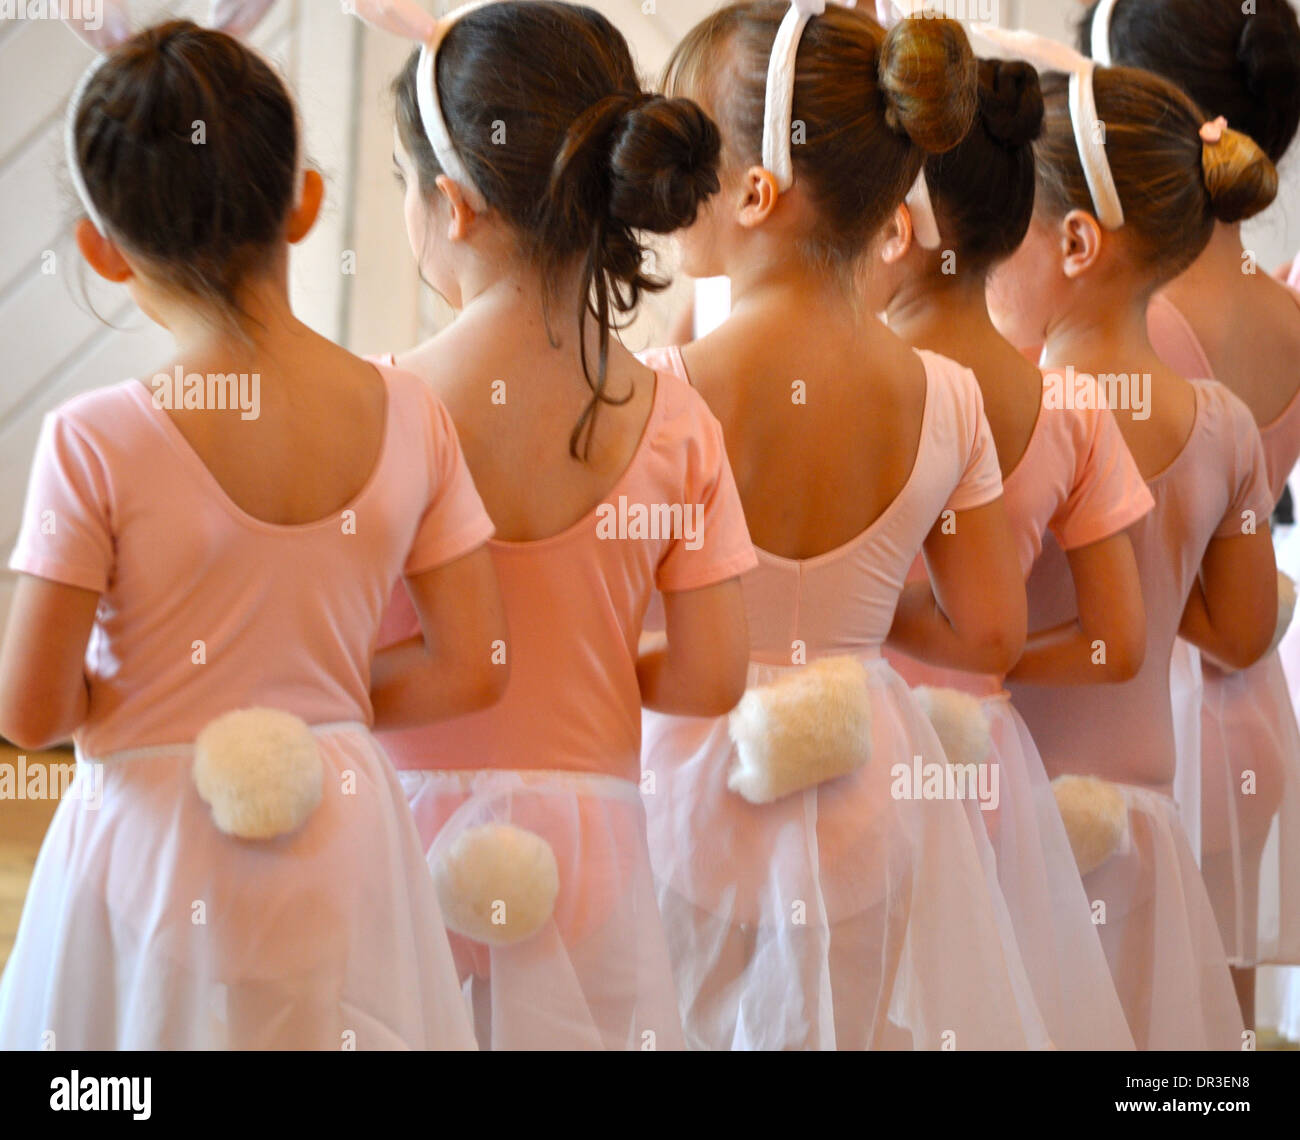 row of child ballerinas lined up with bunny tails - Stock Image